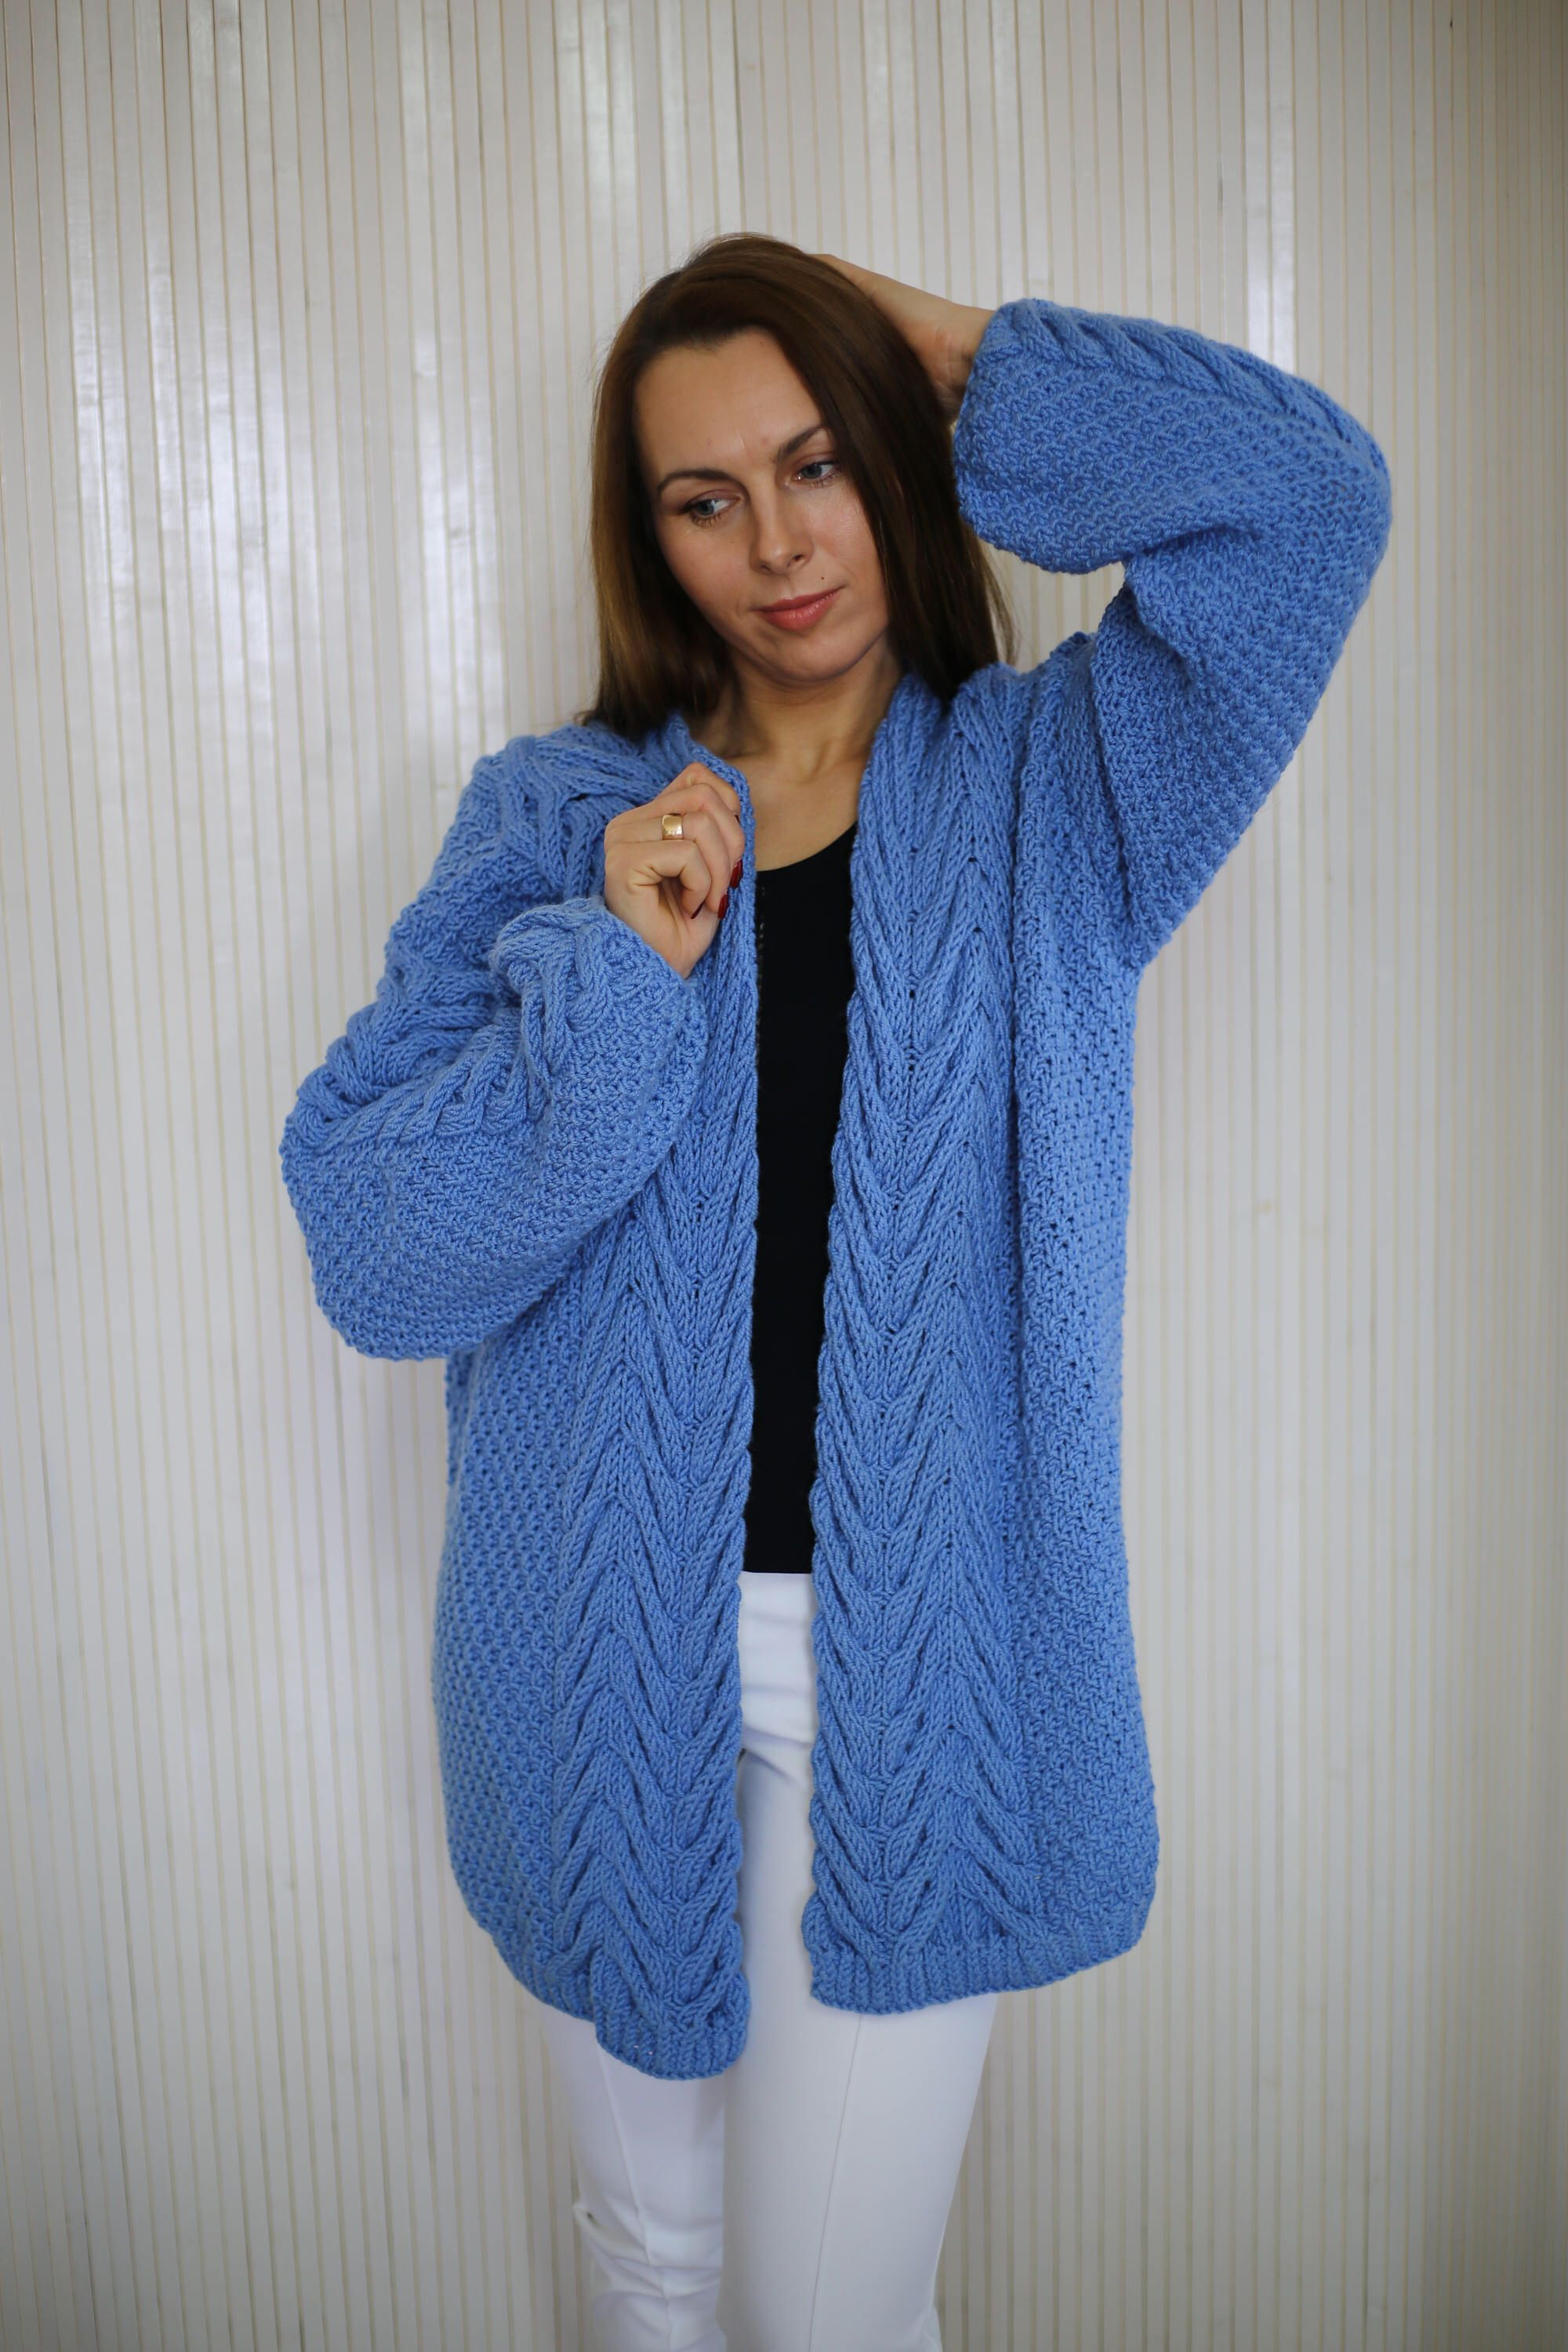 Large Cardigan Long Cable Knit Sweater Chunky Knit Plus Size